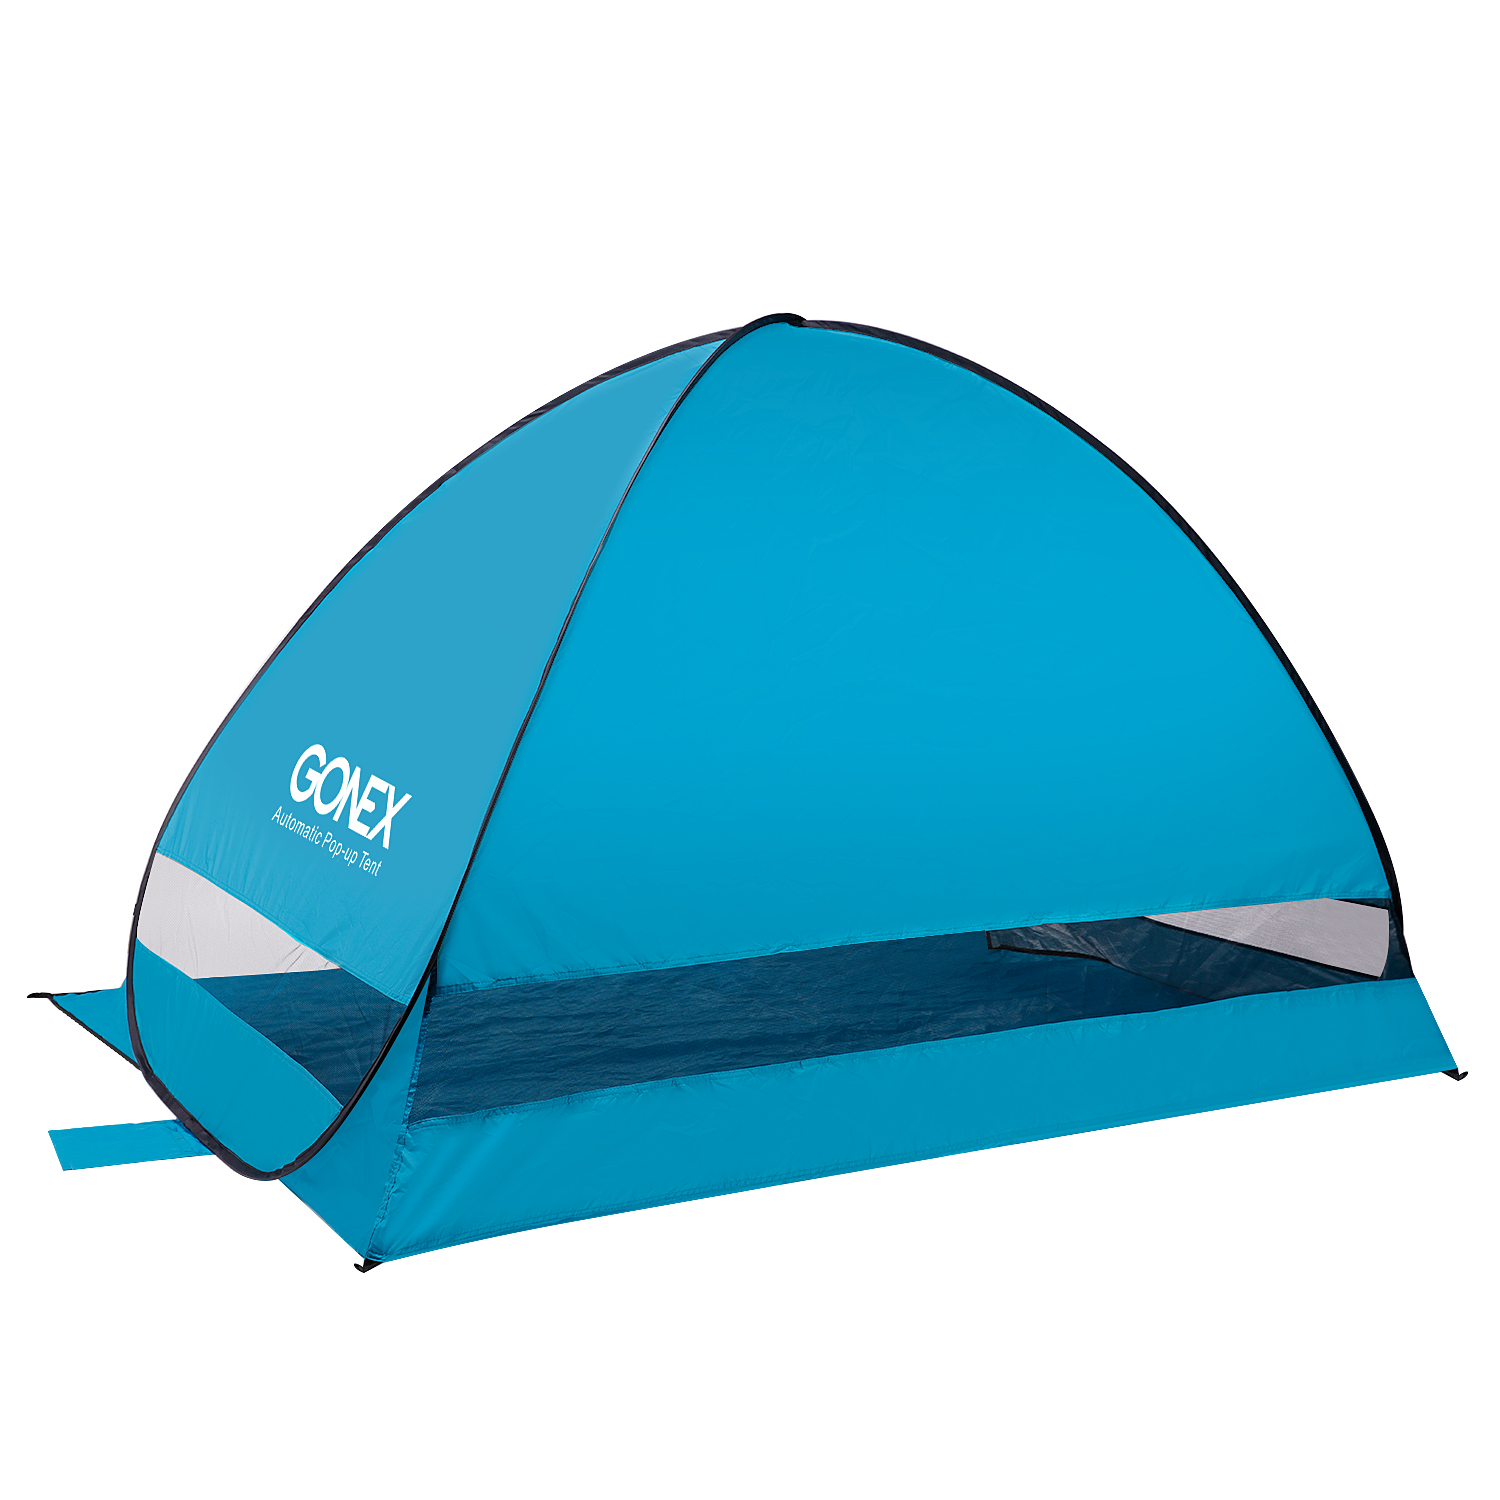 Portable Sports Canopy : Outdoor sport anit uv portable beach shelter sun shade